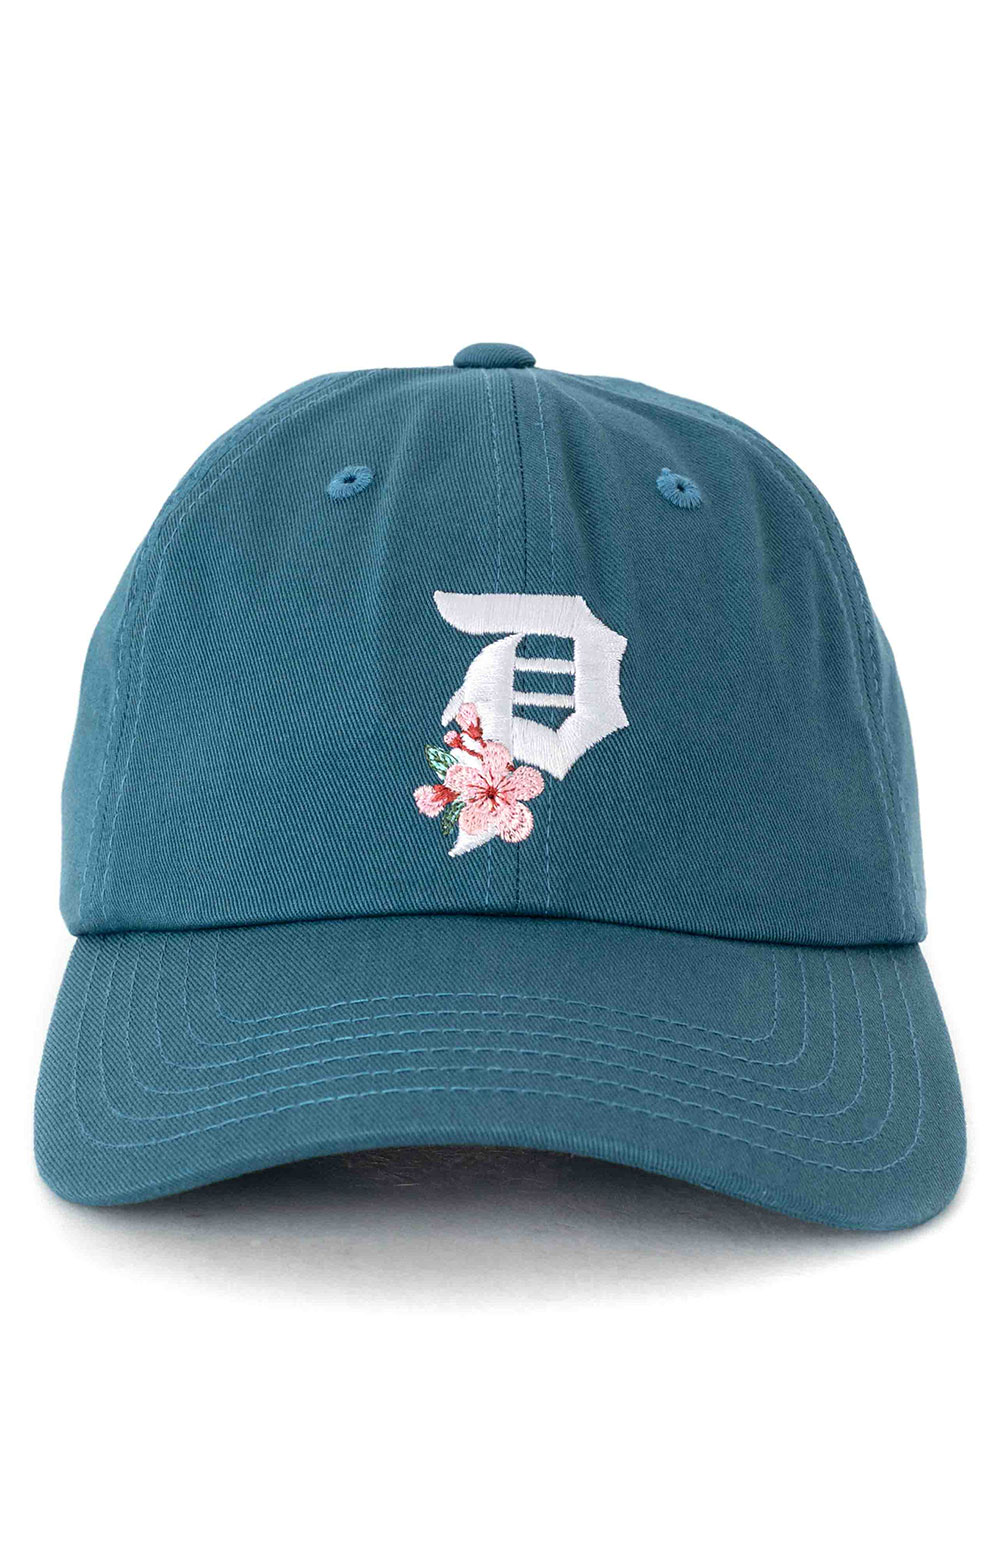 Dirty P Cherry Blossom Dad Hat - Blue 2